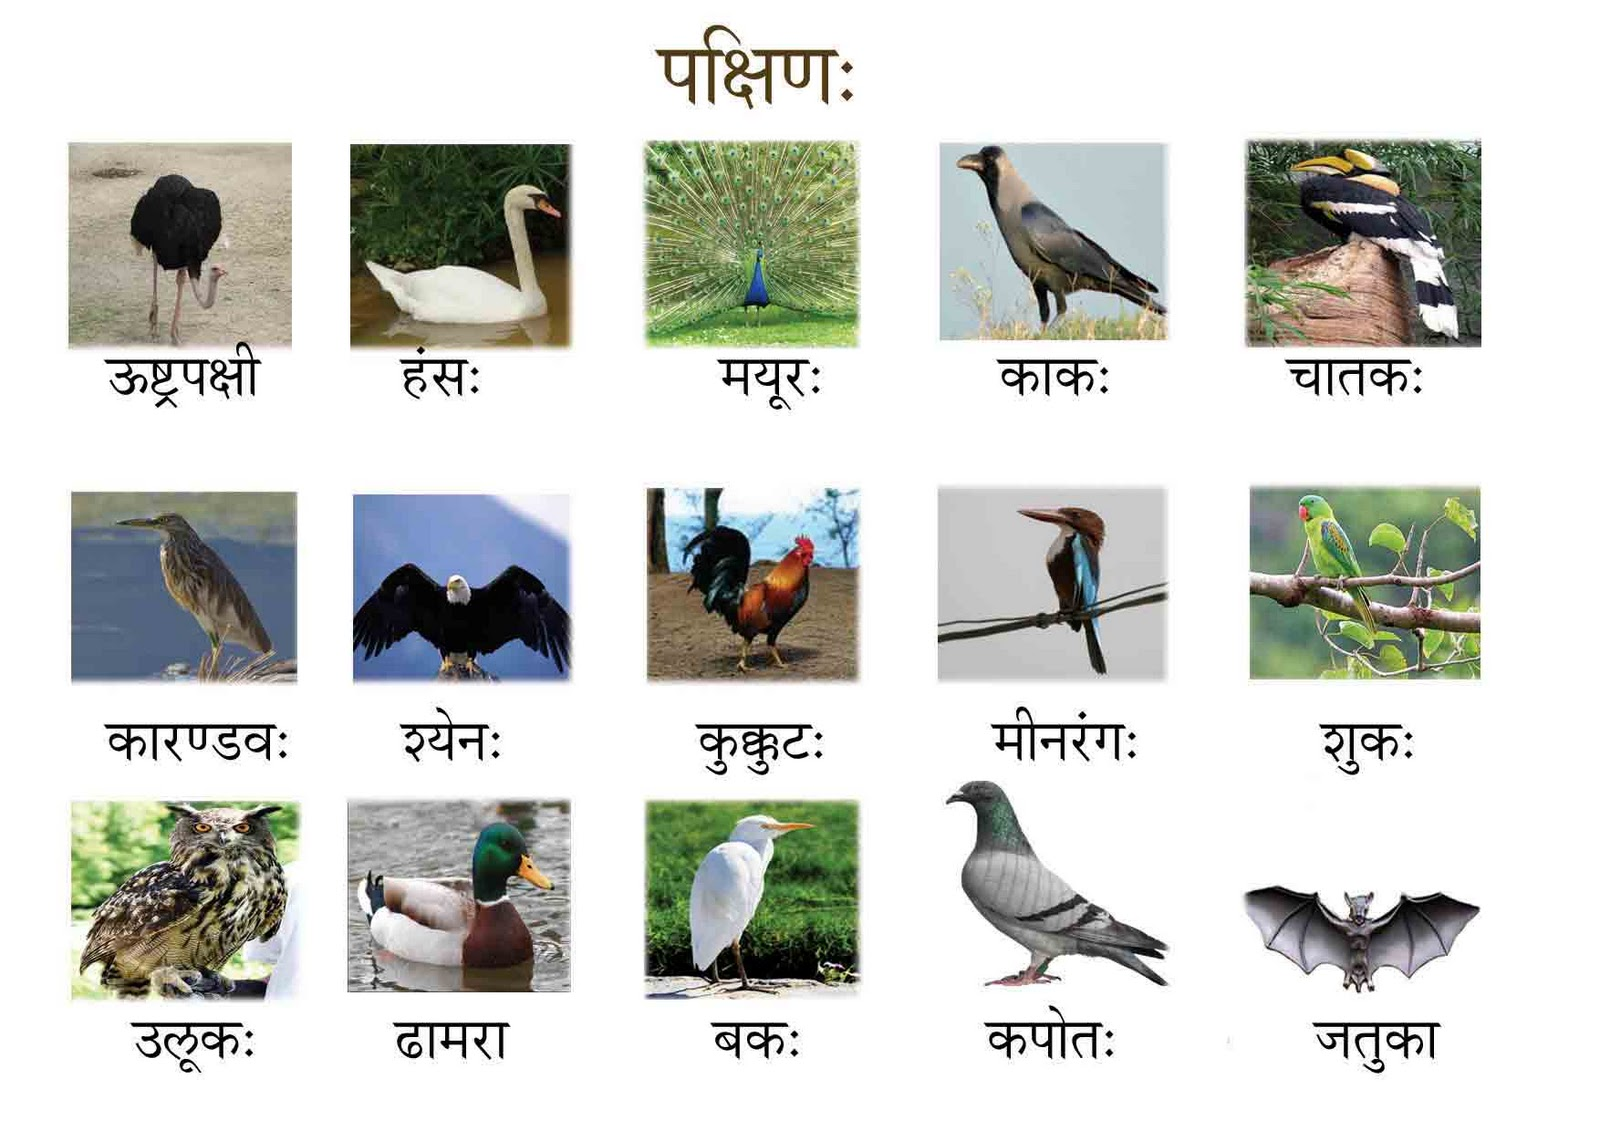 birds in hindi भाग लें। hindi (hi) language icon 01png  bird diversity 2013png   illustration of the heads of 16 types of birds with different shapes and sizes of  beak.